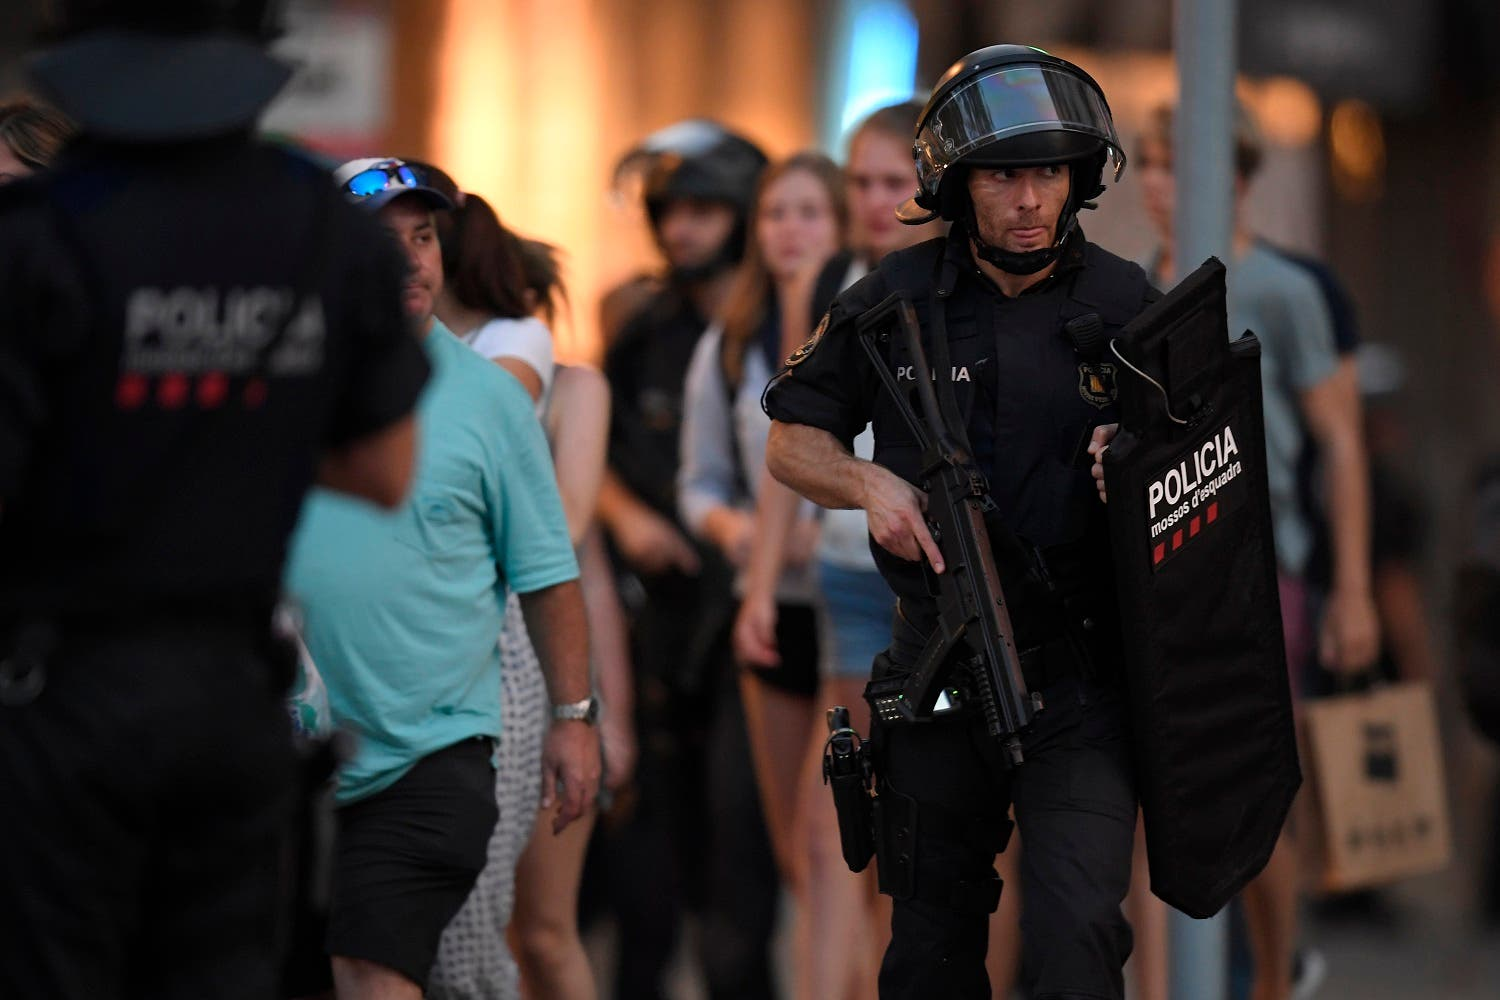 Spanish policemen stand guard in a cordoned off area after a van ploughed into the crowd, killing 13 persons and injuring over 50 on the Rambla in Barcelona on August 17, 2017. A driver deliberately rammed a van into a crowd on Barcelona's most popular street on August 17, 2017 killing at least 13 people before fleeing to a nearby bar, police said. AFP